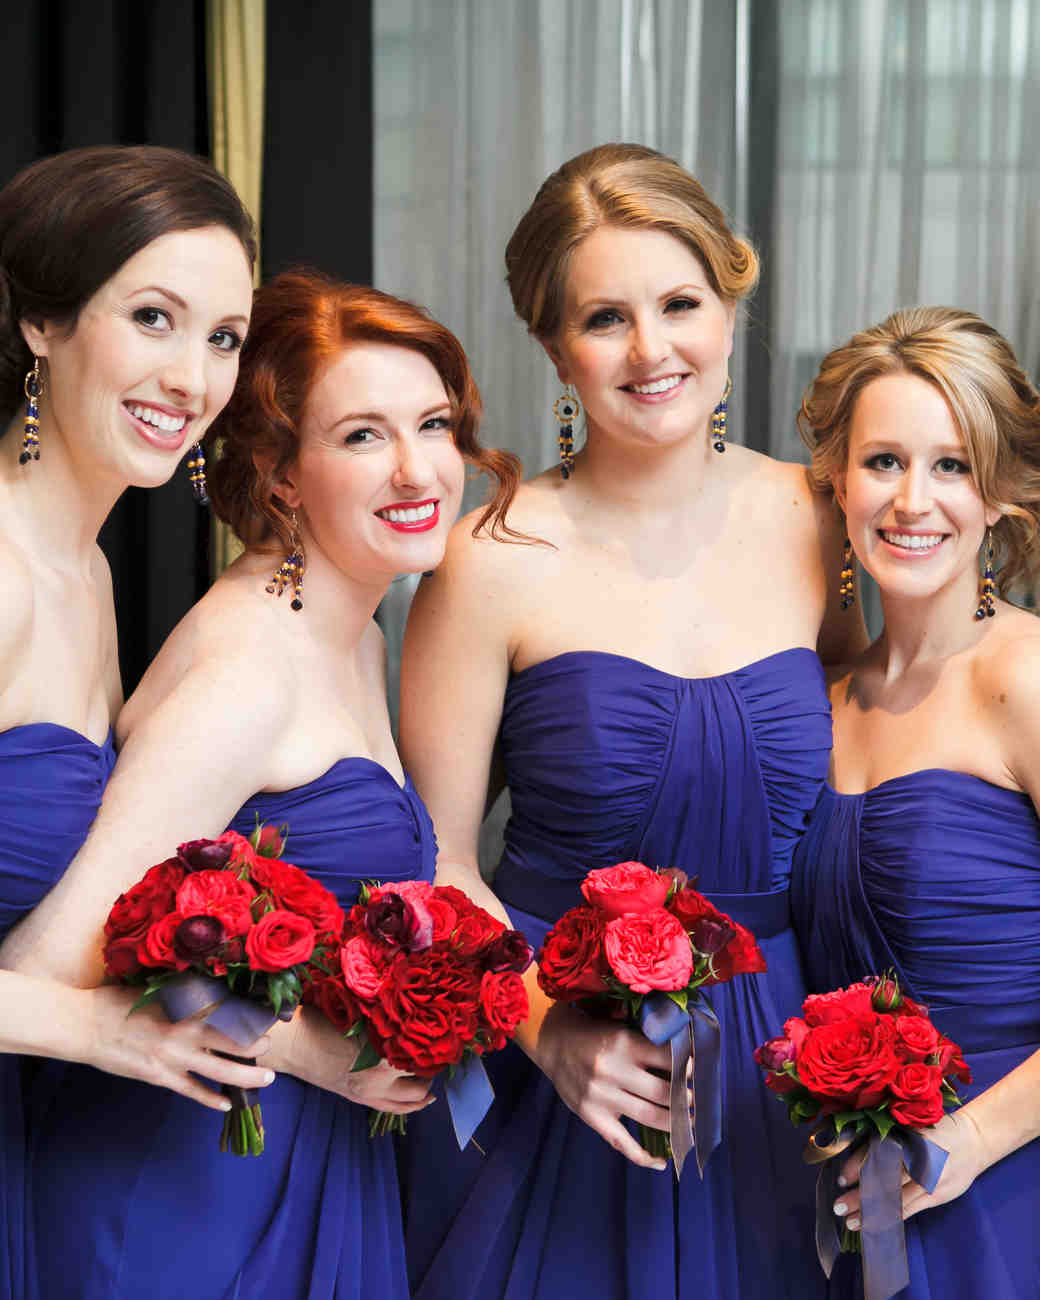 Vintage Wedding Dresses Chicago: A Glamorous New Year's Eve Destination Wedding In Chicago